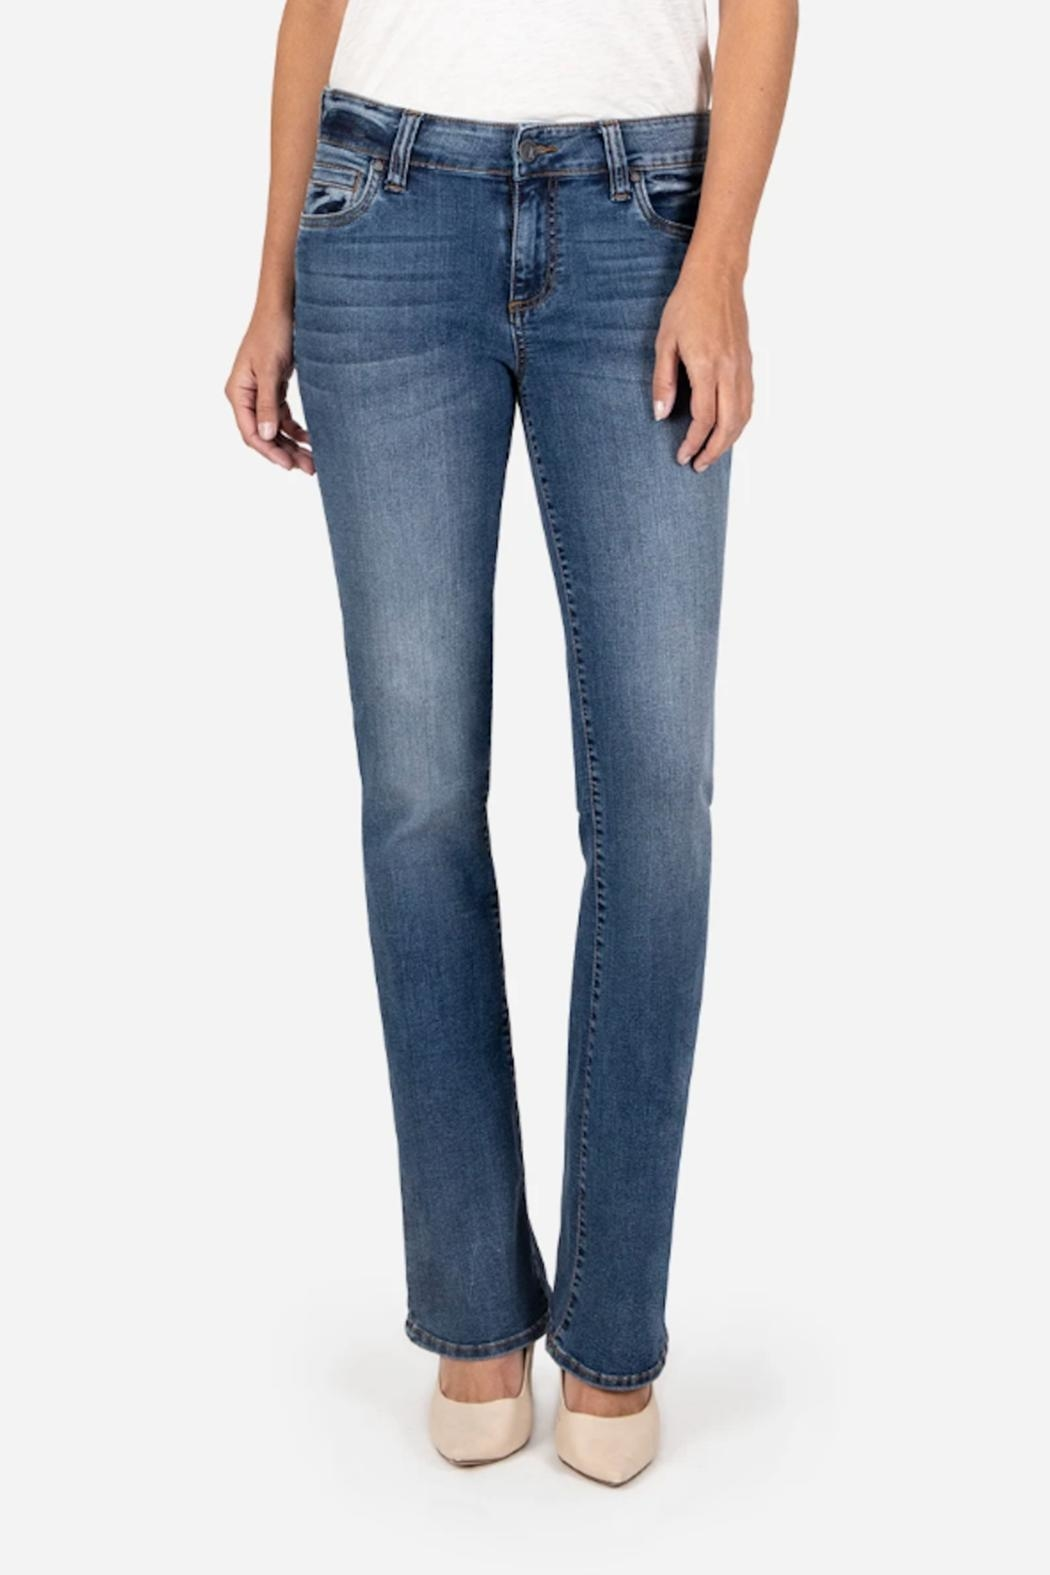 Kut from the Kloth Natalie Bootcut Jeans - Main Image